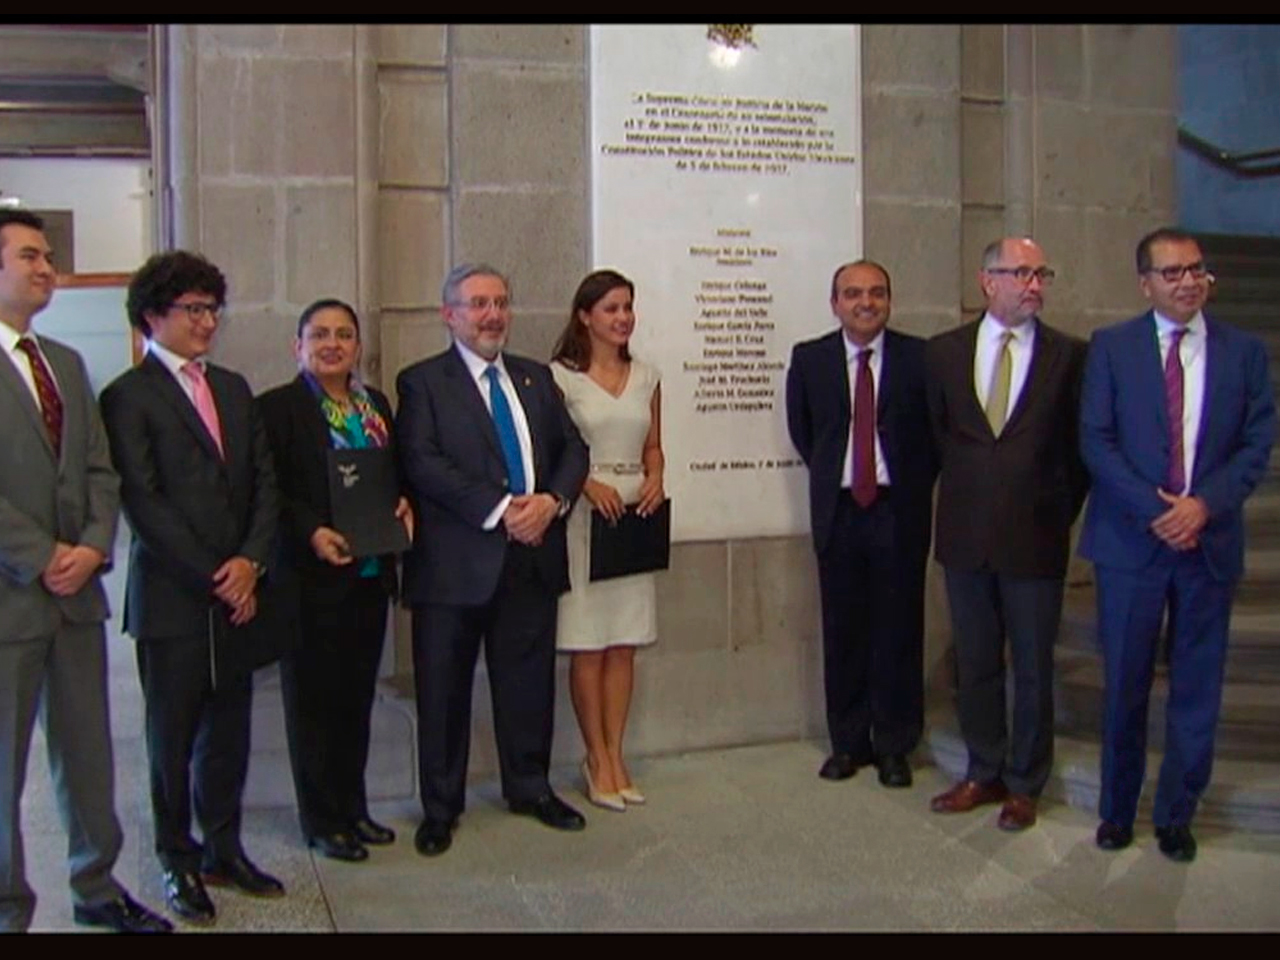 Laura Márquez Martínez won the National Thesis Contest on the Future of Administration of Constitutional Justice in Mexico